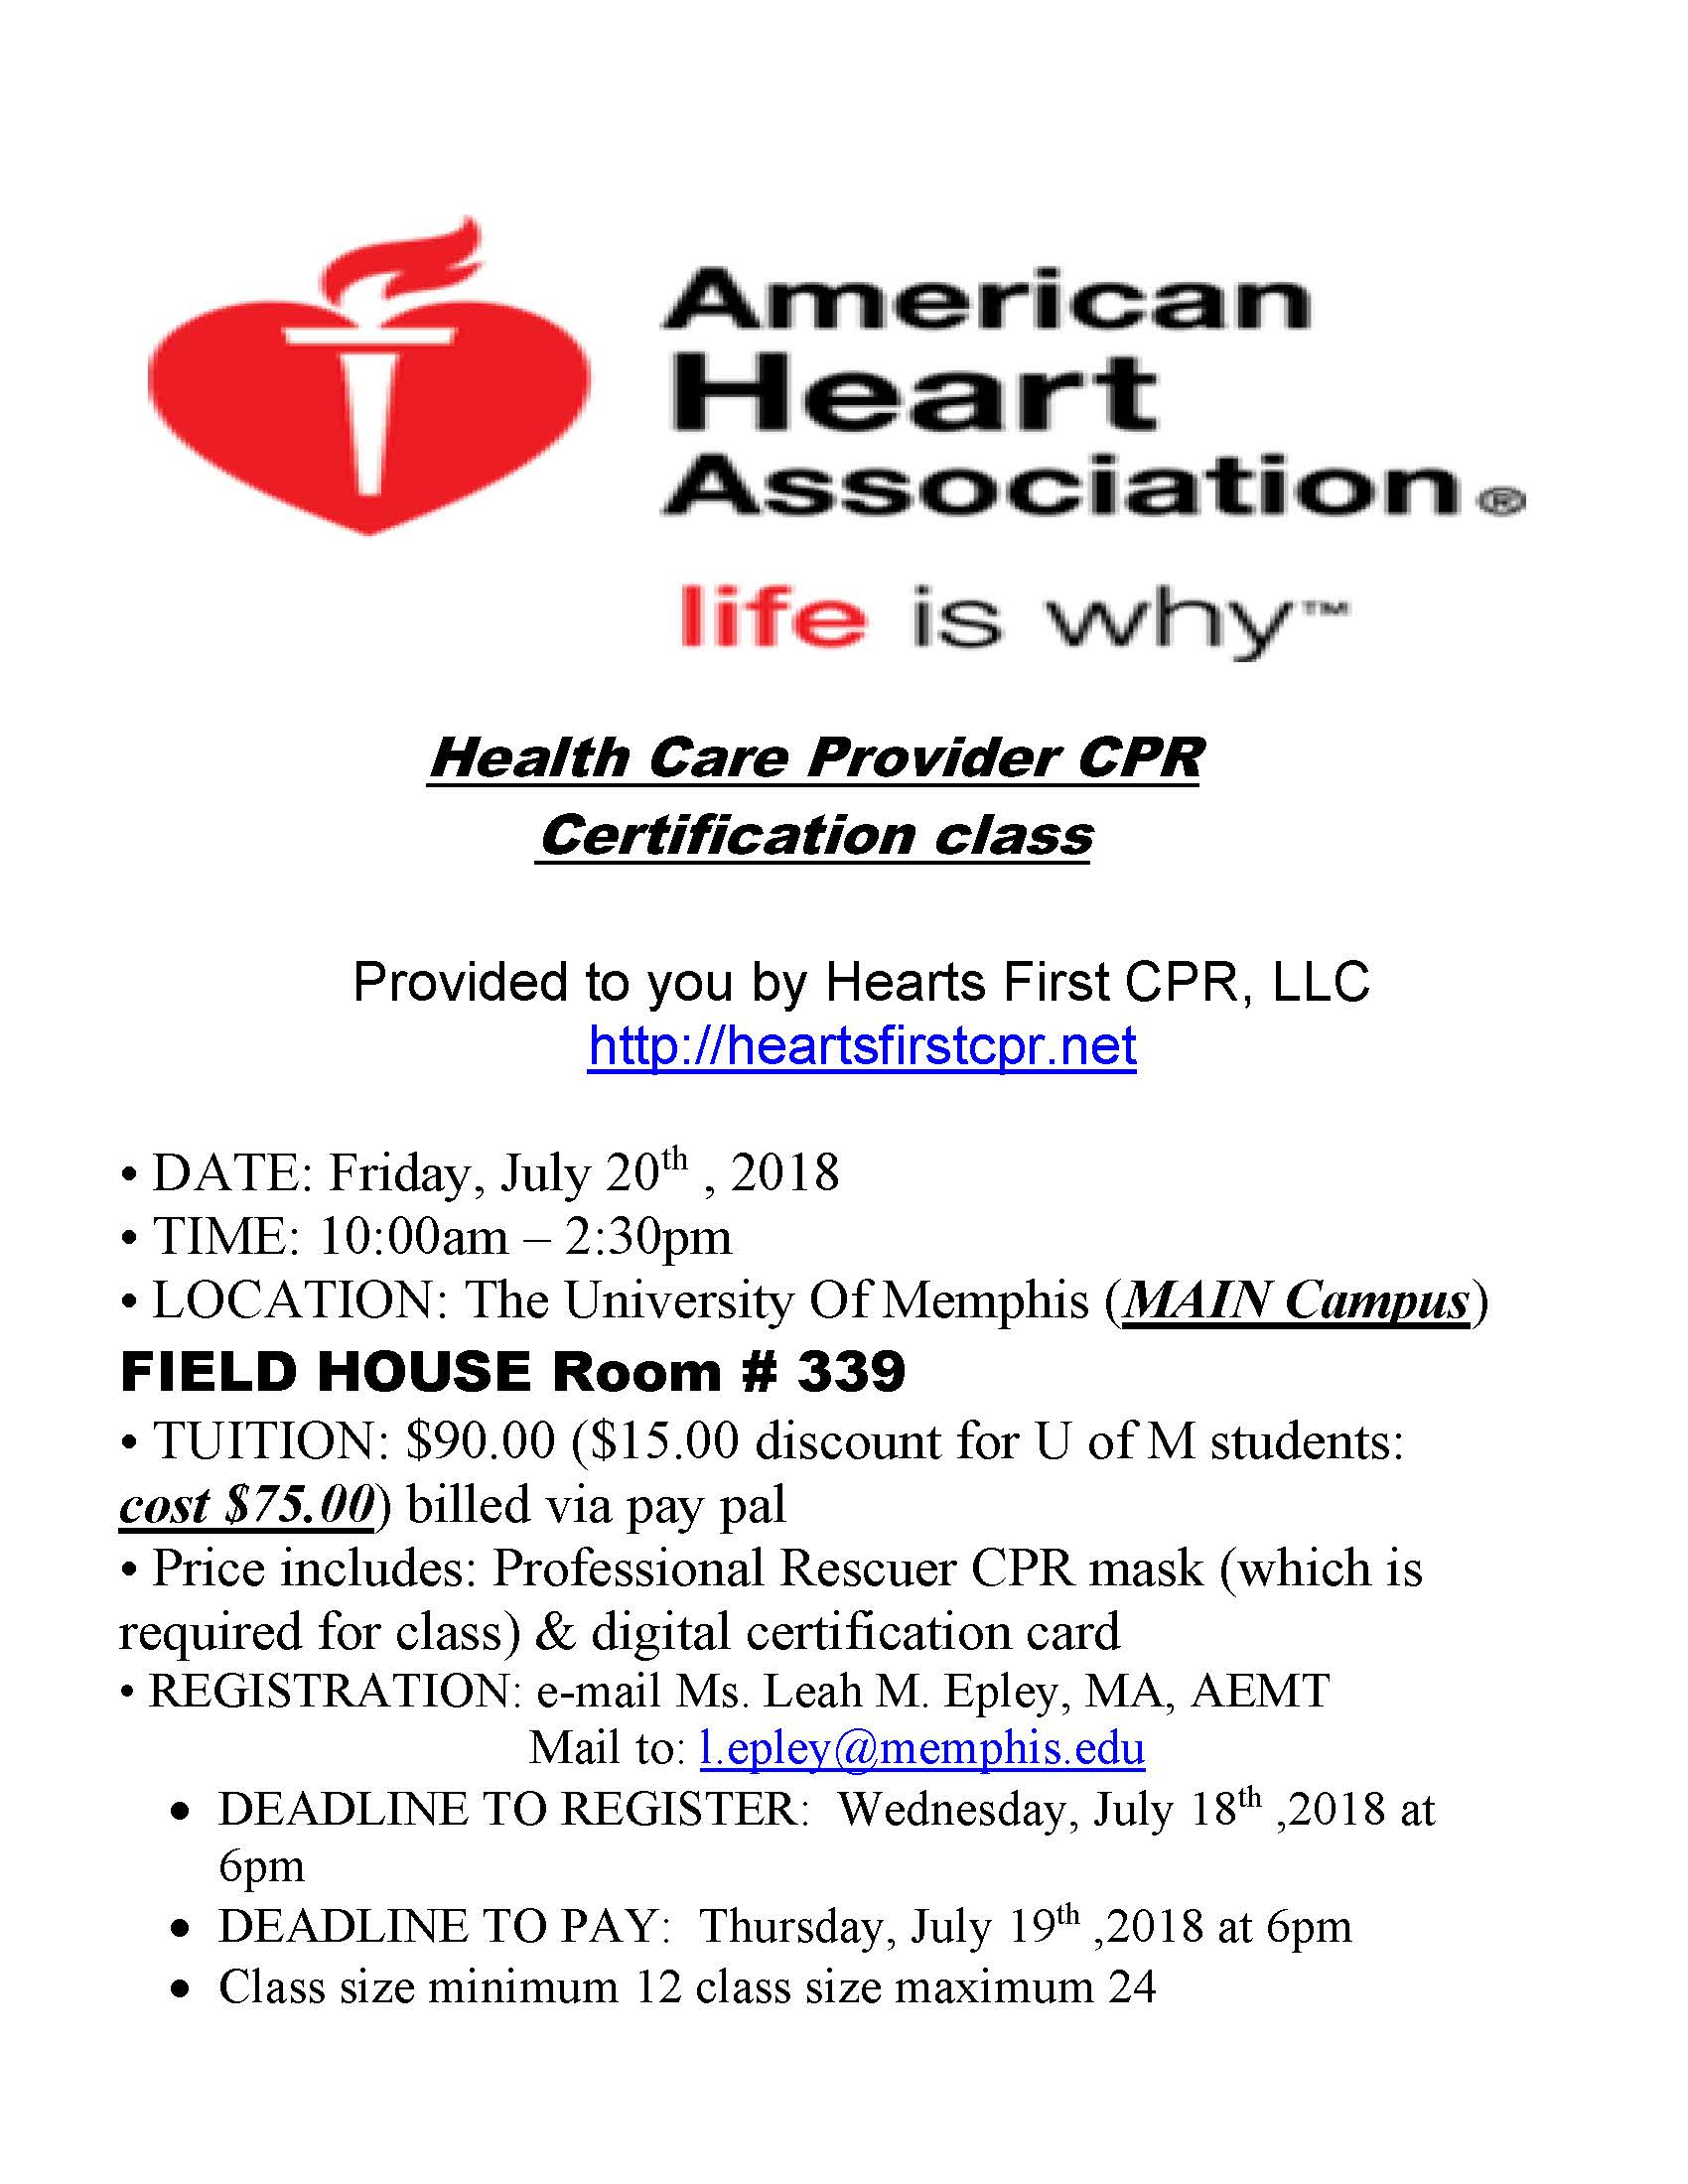 Health Care Provider CPR Certification Class offered on Friday, July 20th 2018. Contact Leah Epley at l.epley@memphis.edu for more information.